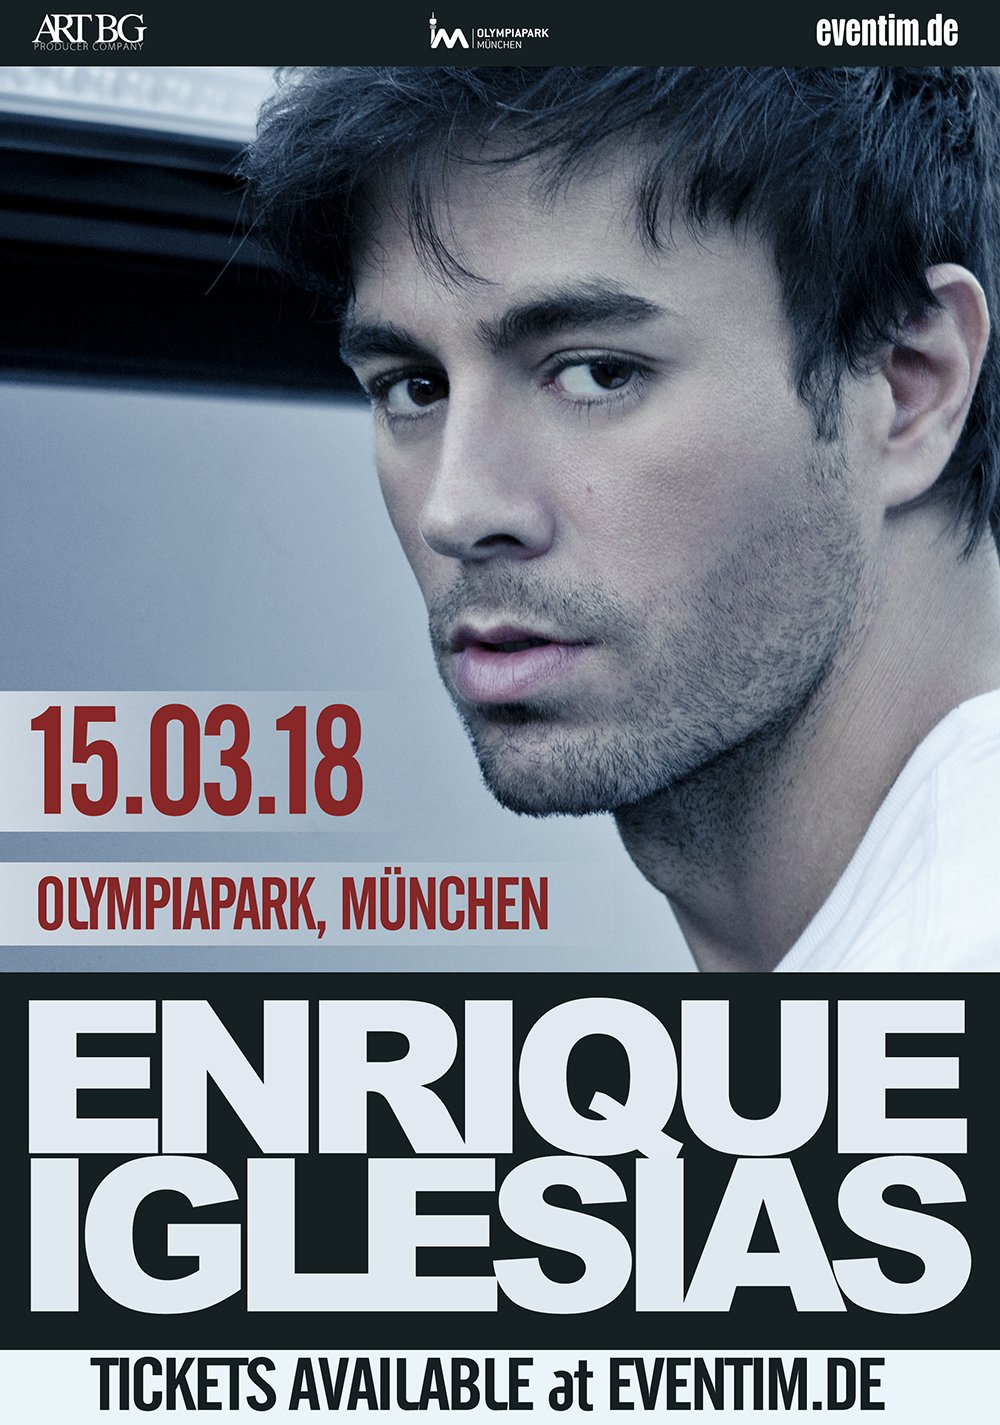 Munich!! Coming to Olympiapark next year on March 15th!! Tickets going on sale tomorrow @ 10 AM CET! https://t.co/bnzOHqaF2g